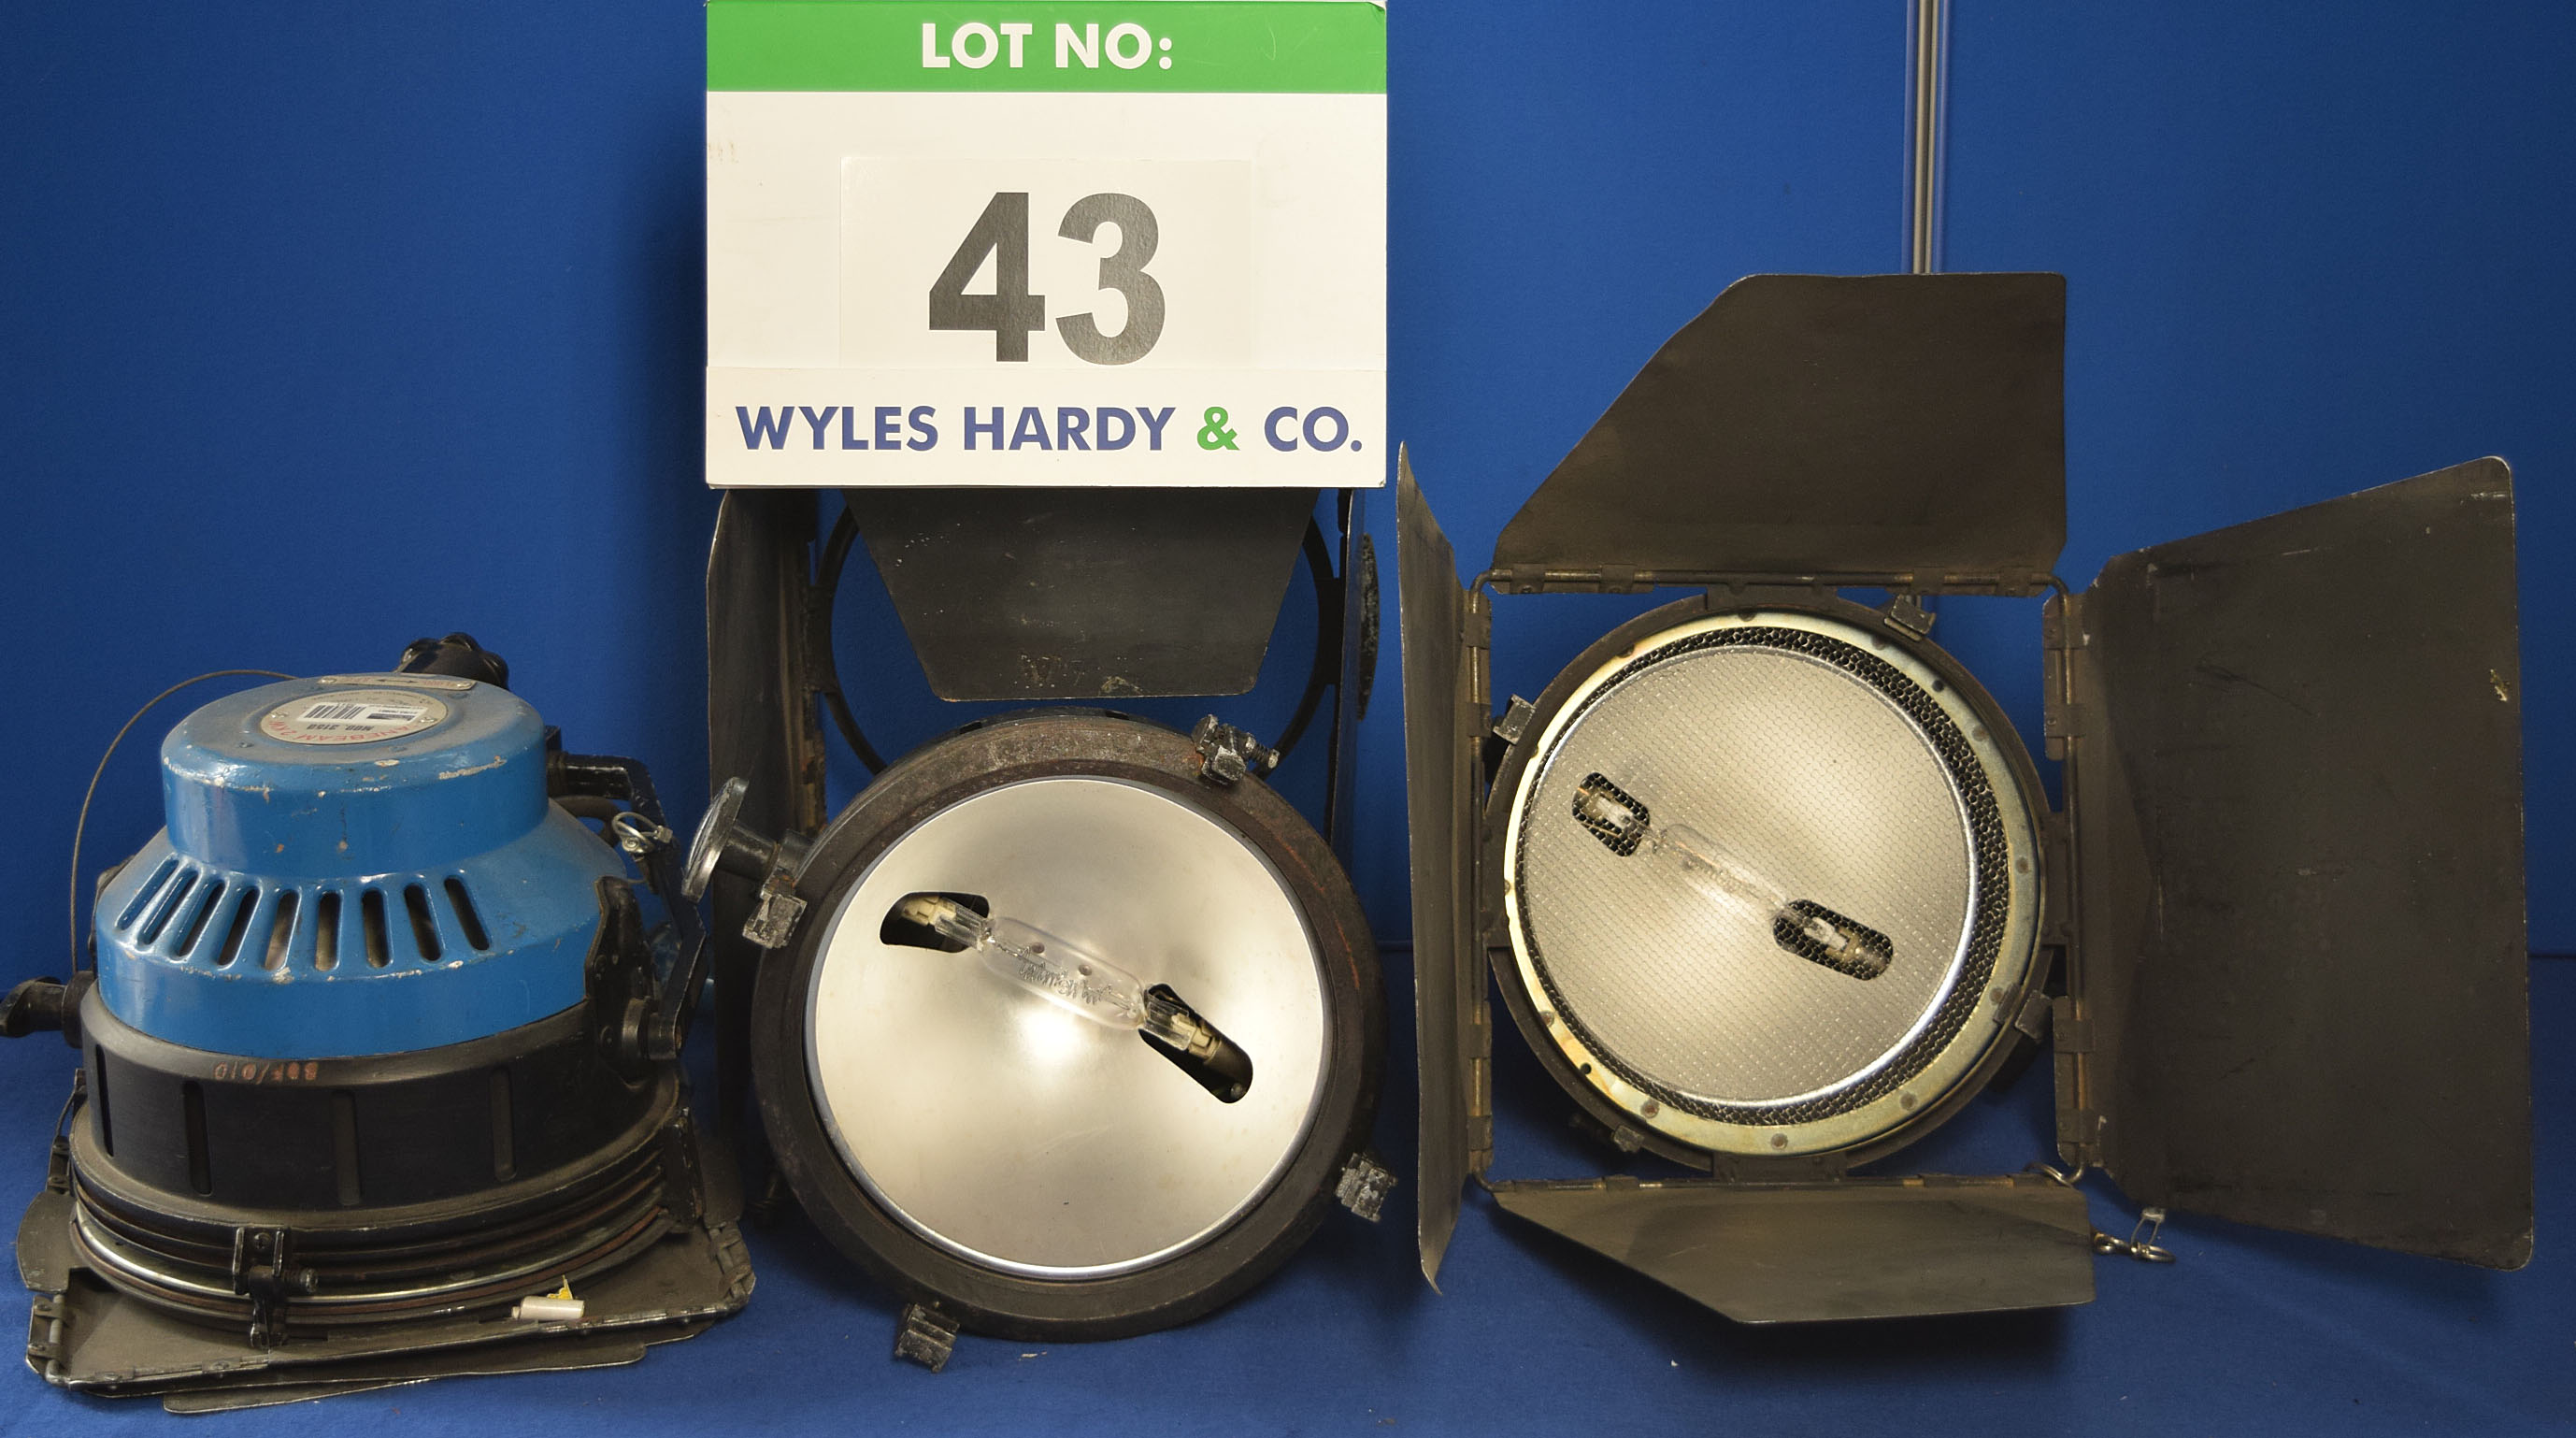 Lot 43 - Five QUARTZCOLOR Ianabeam 2KW 2000W Lights each with fitted Barn Doors, Stirrup Mount and Switched